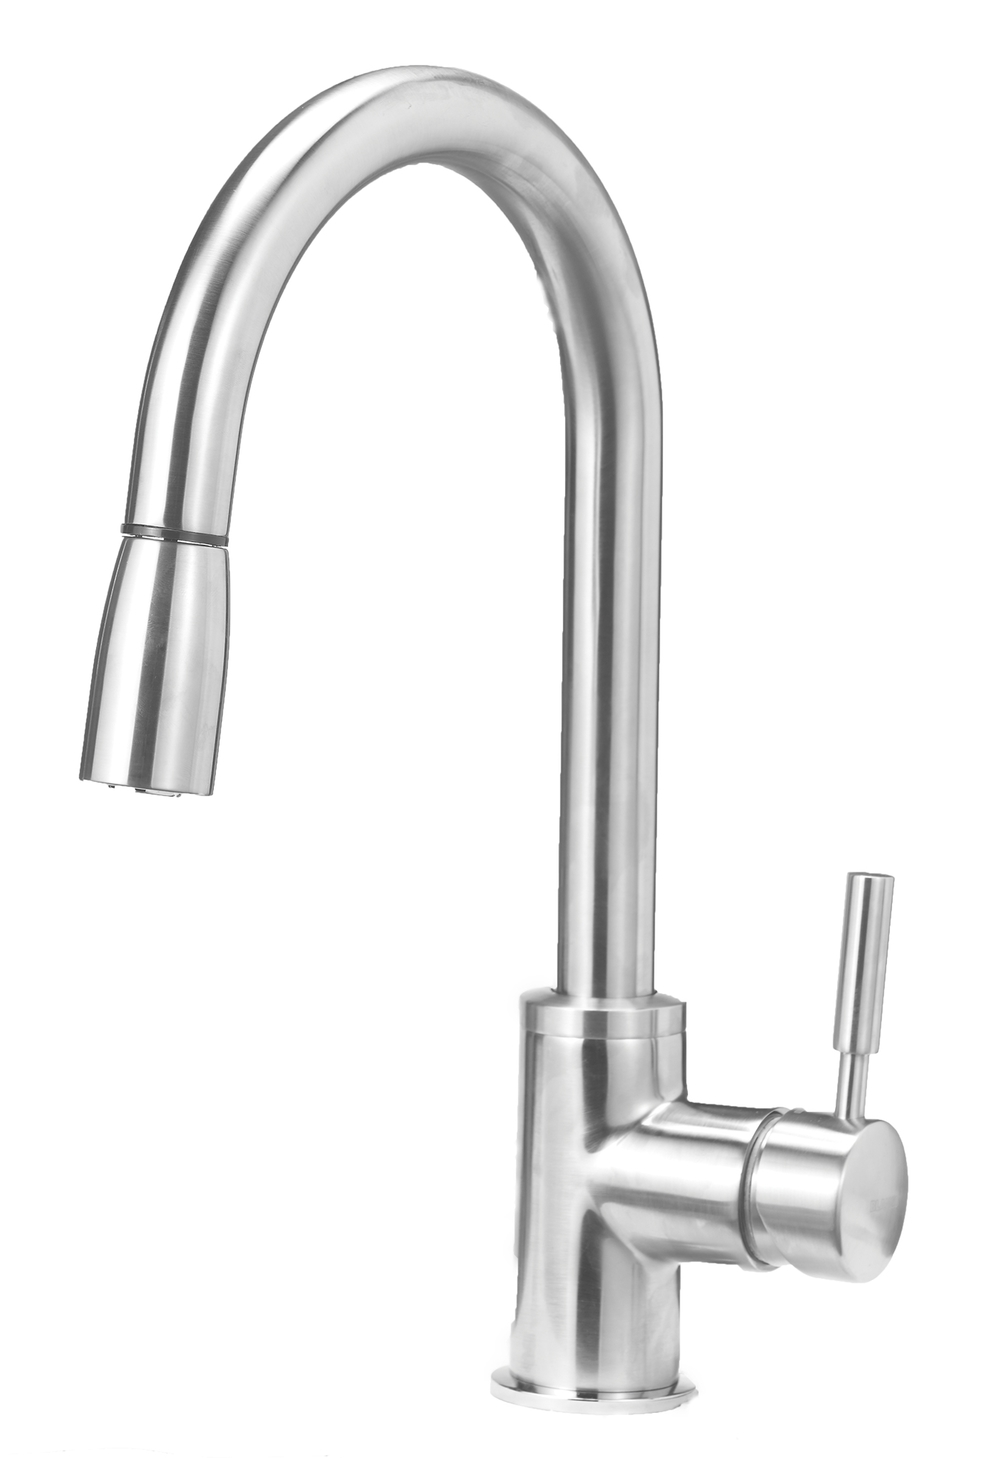 Blanco water saving faucet - 441642-sono-sil-ss_path_5x7.jpg